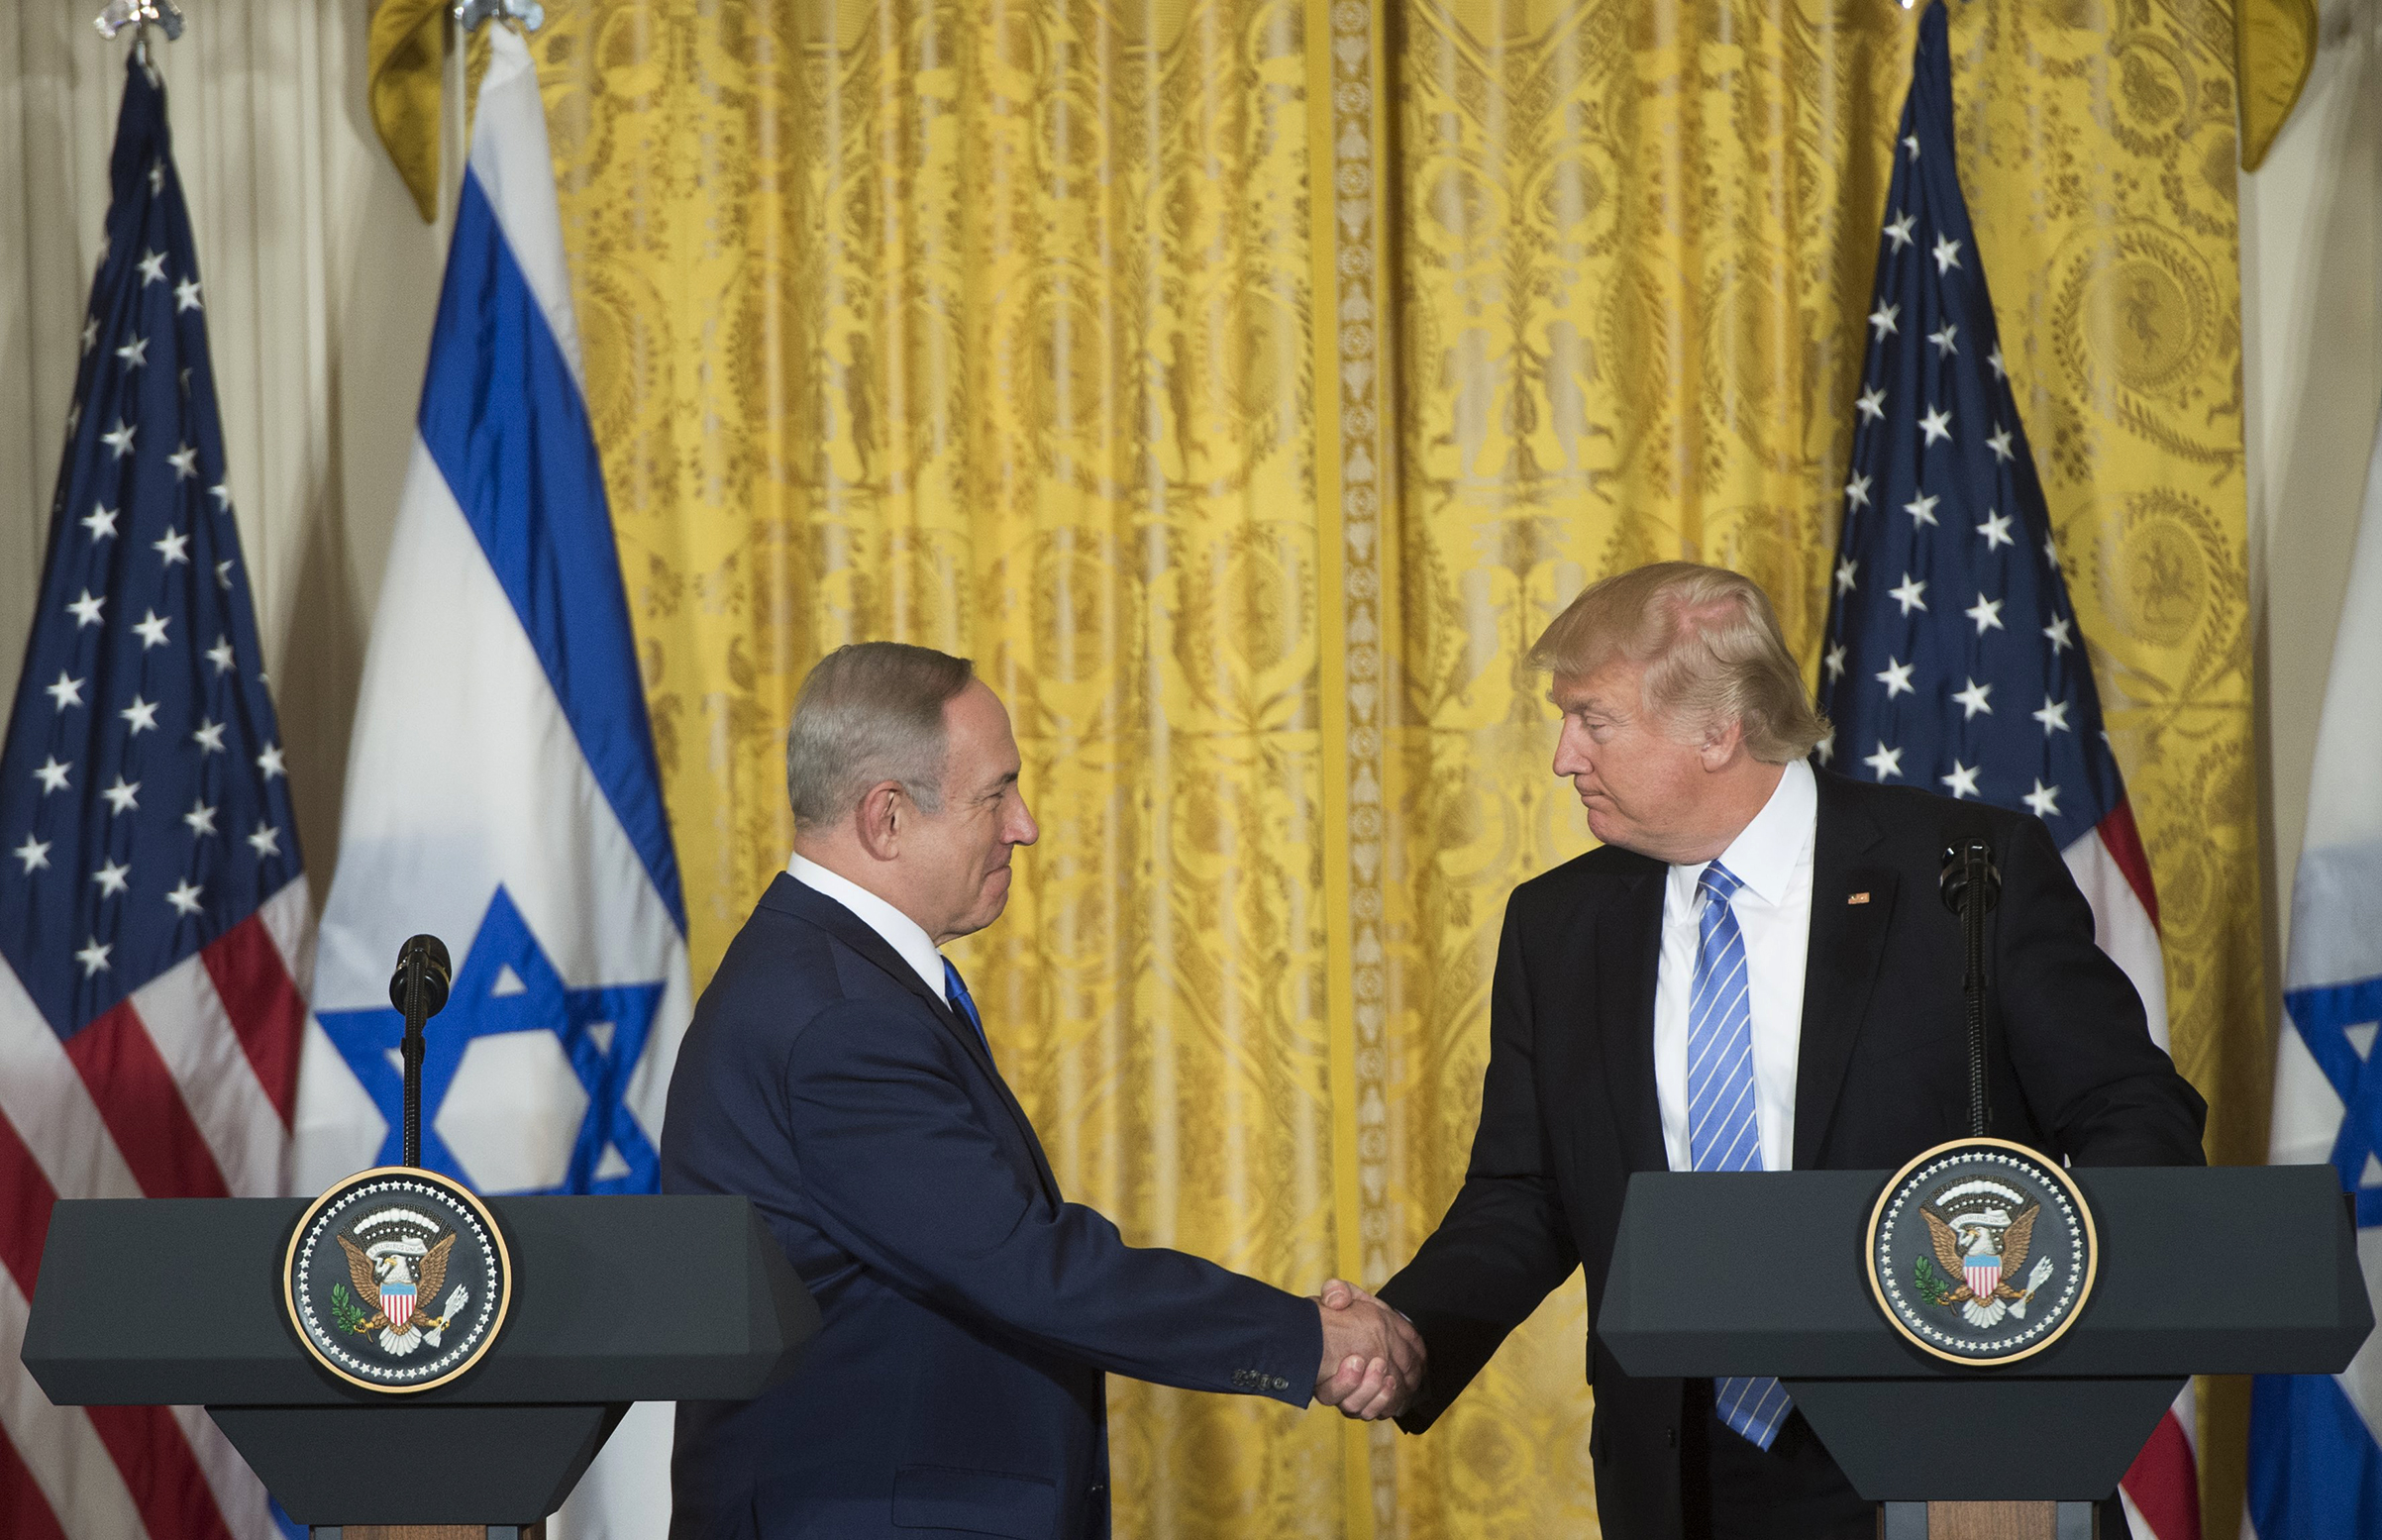 President Trump and Israeli Prime Minister Benjamin Netanyahu hold a joint press conference in the East Room of the White House on Feb. 15, 2017.